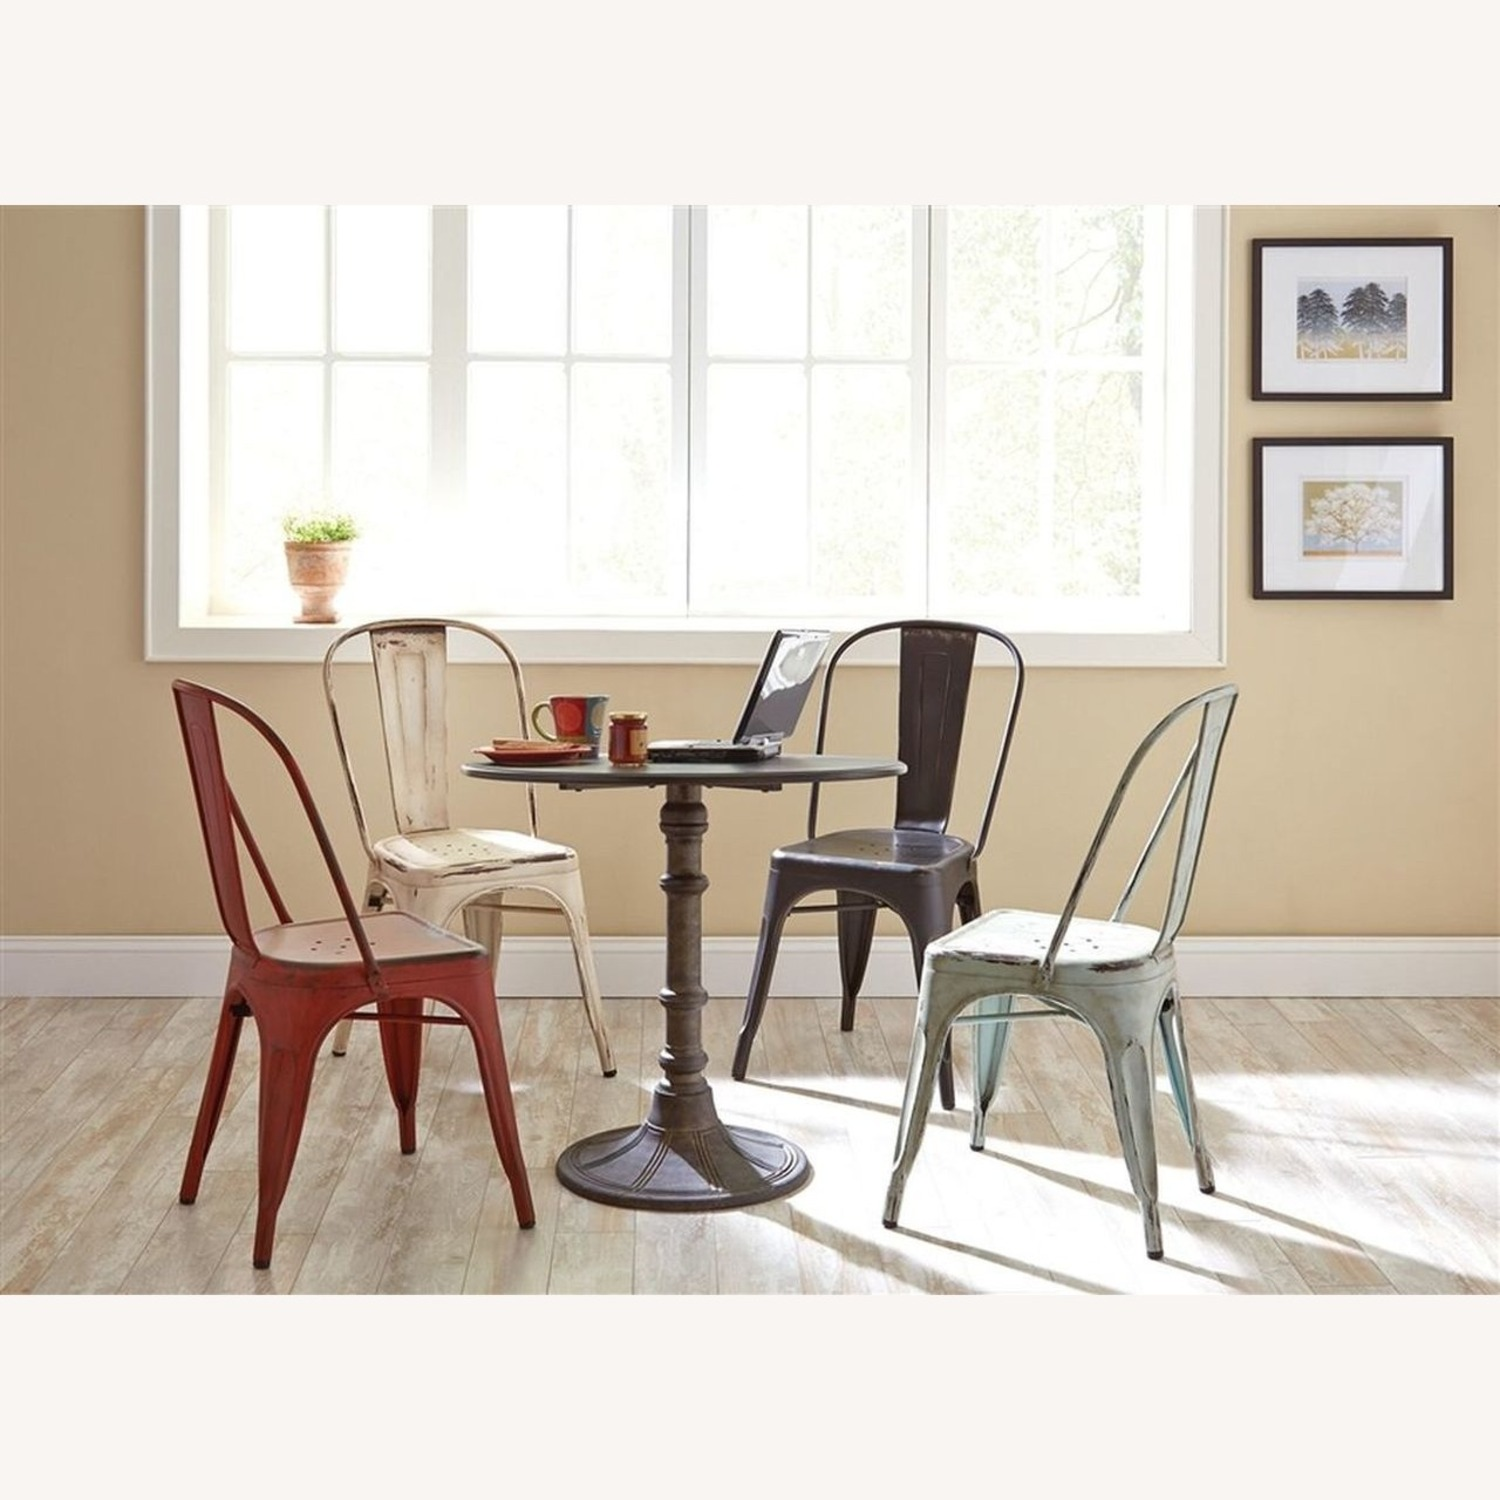 Beautiful Dining Table In Antique Bronze Finish - image-2